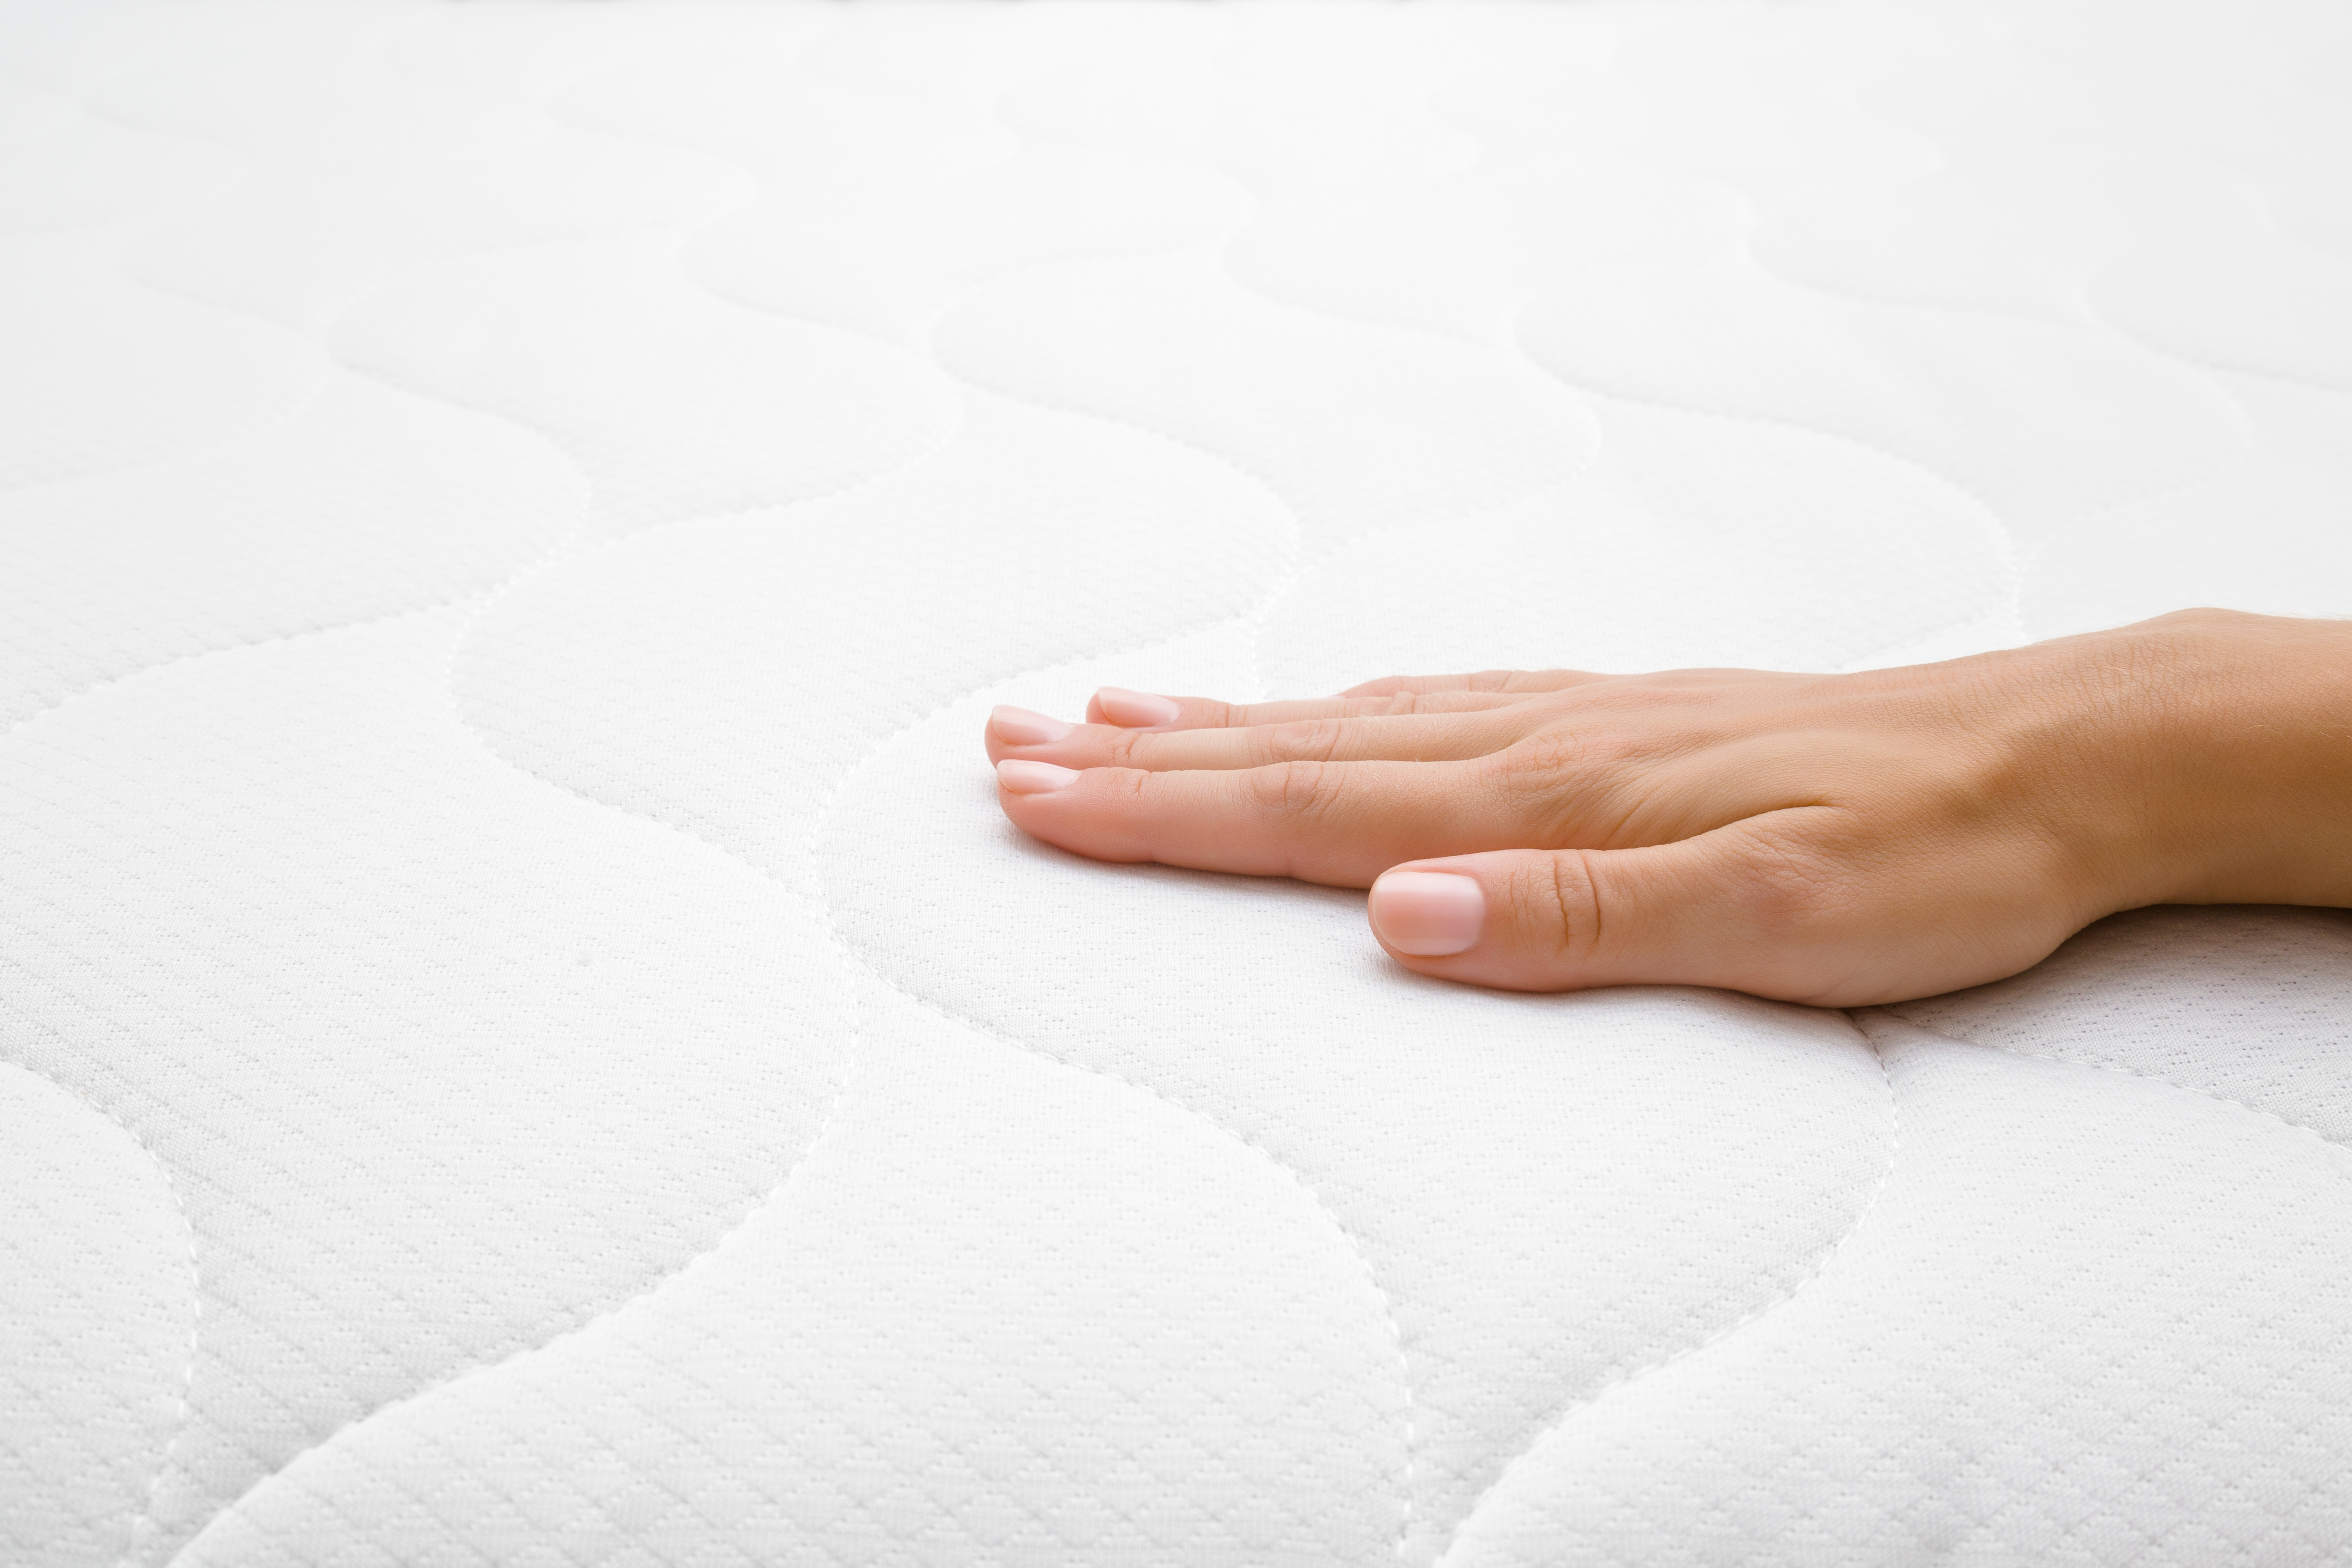 The mattress industry is evolving, but has the messaging changed?